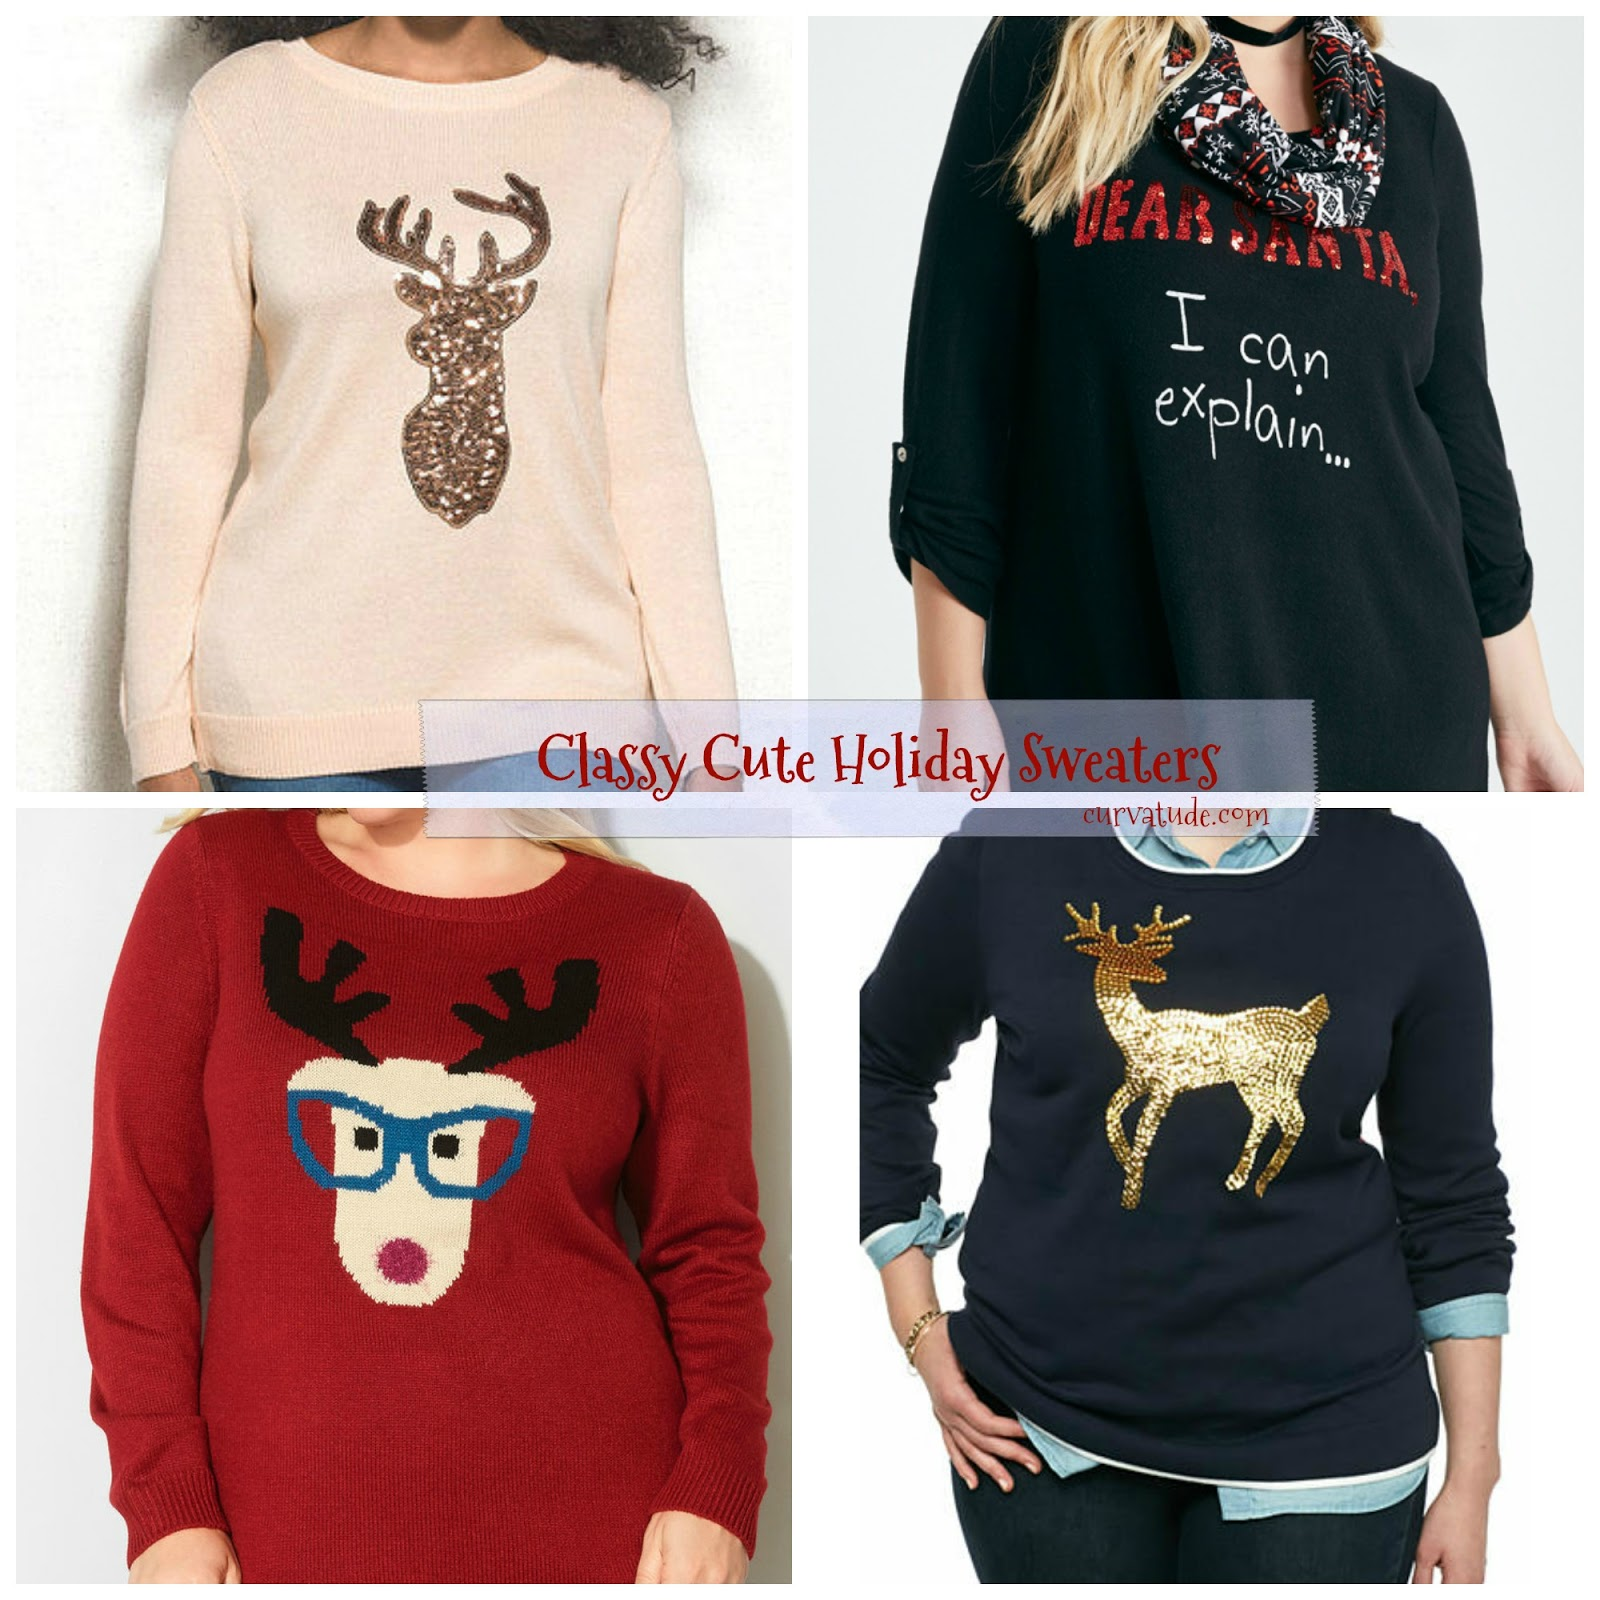 5b8fbeb35e4c Fashion  Classy Cute Plus Size Holiday Sweaters • Curvatude